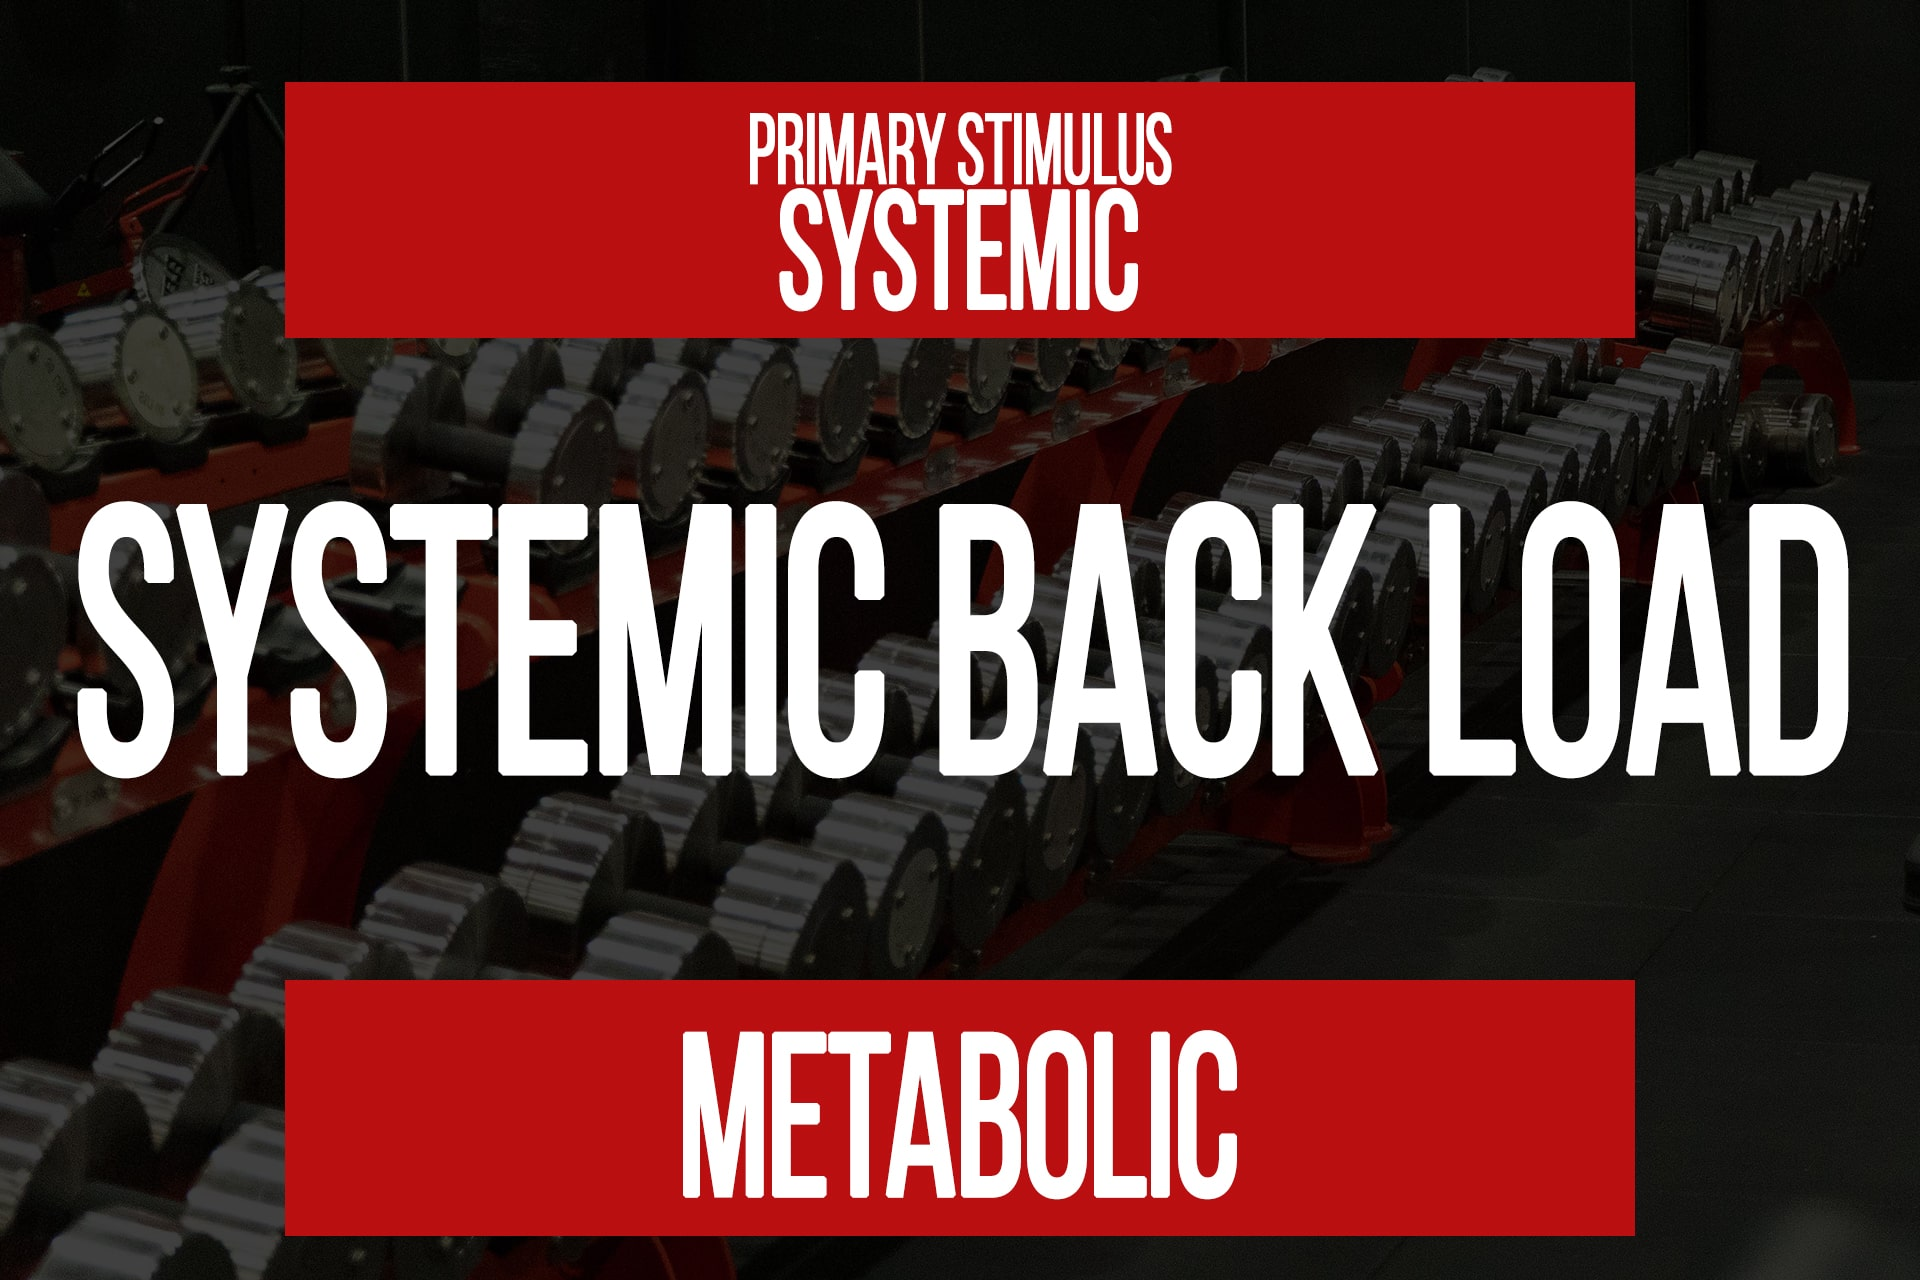 Systemic Backload